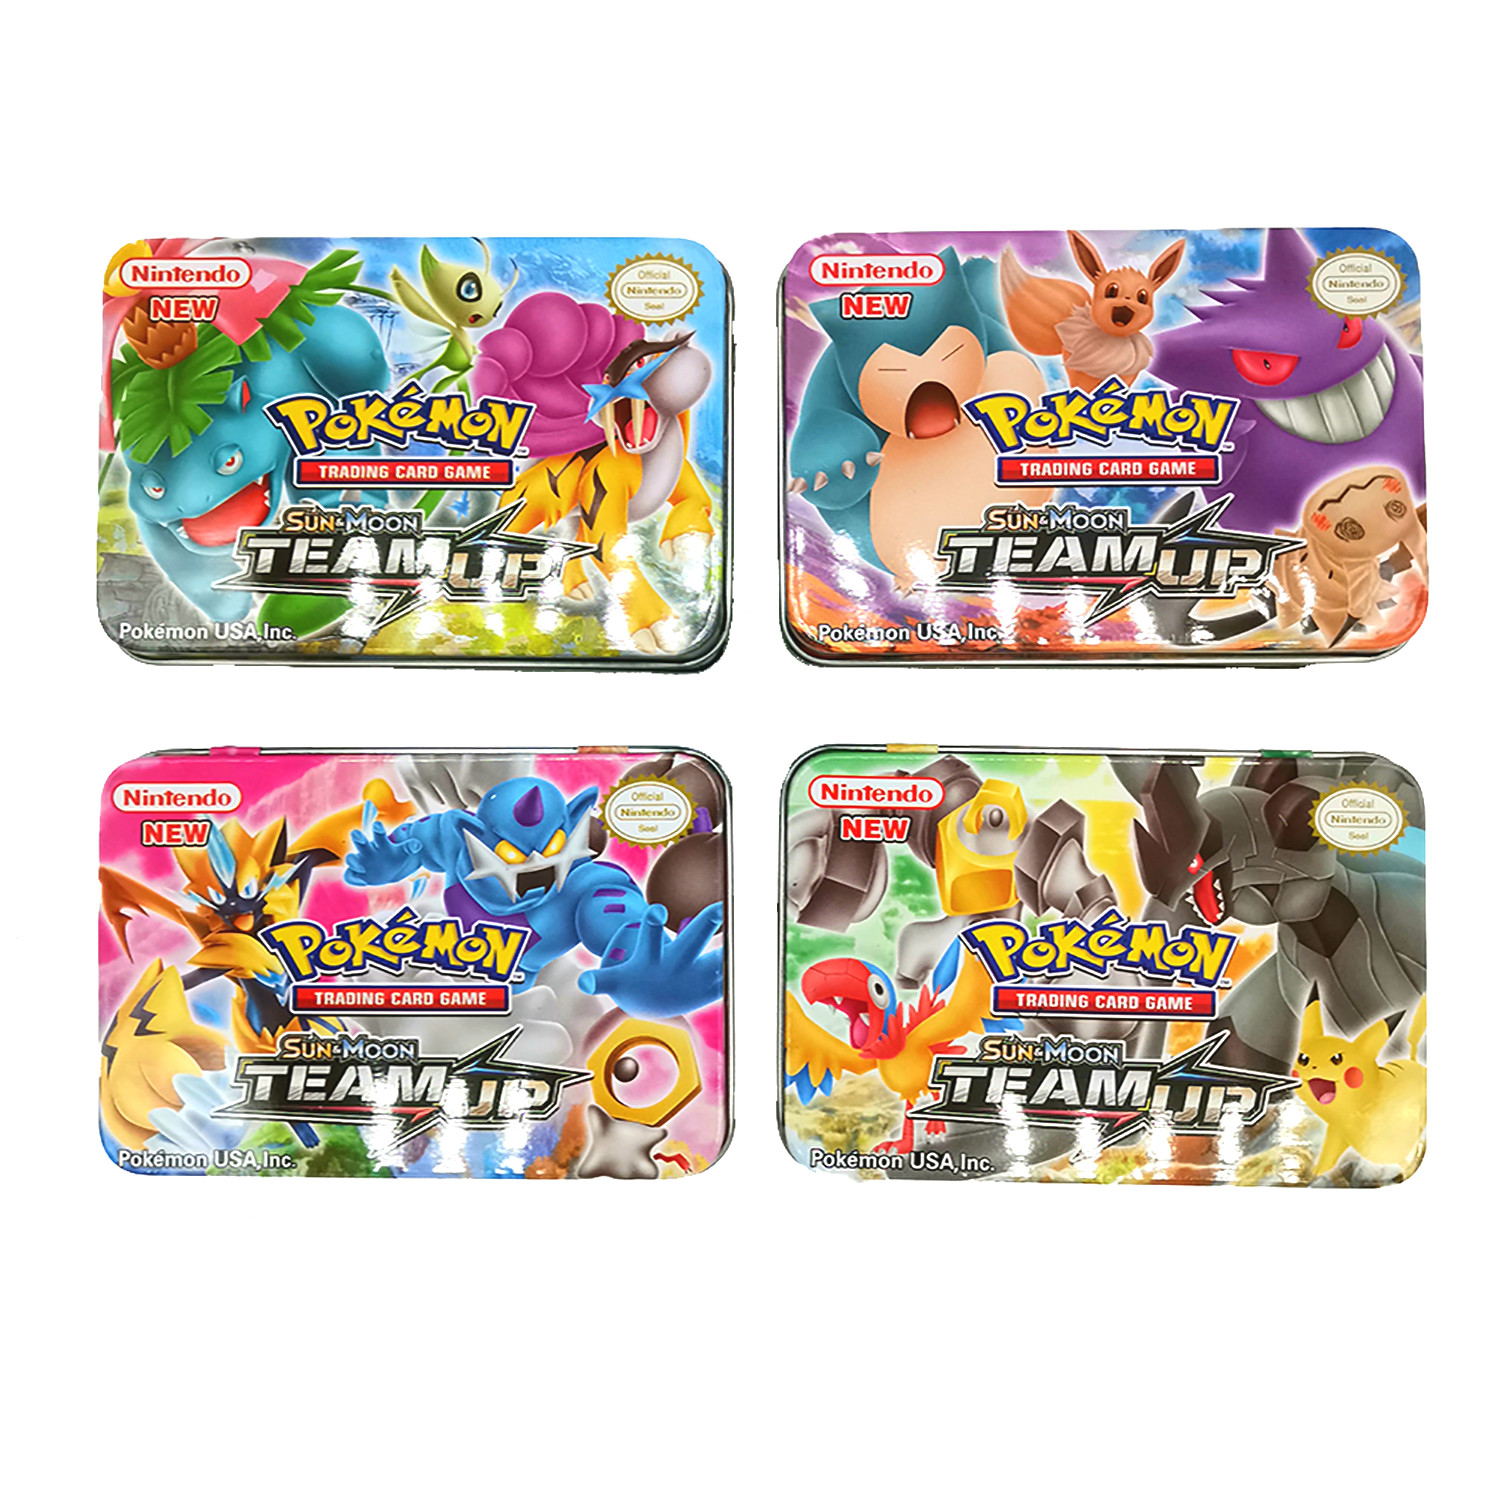 42pcs/set Pokemon Iron Box TAKARA TOMY Battle Toys Hobbies Hobby Collectibles Game Collection Anime Cards For Children